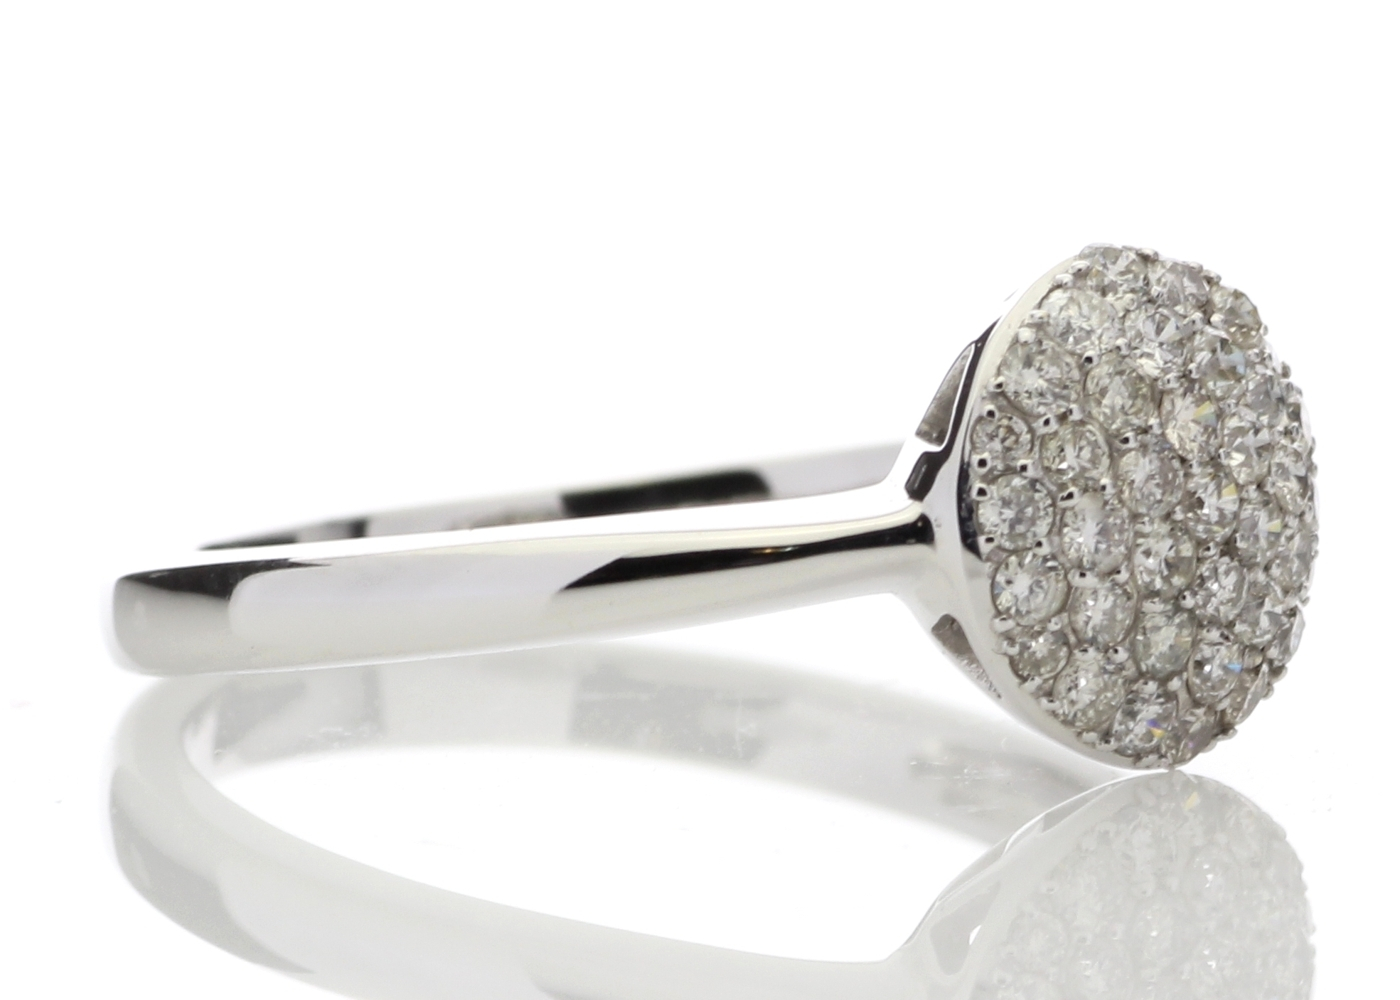 Lot 59 - 9ct White Gold Diamond Cluster Ring 0.51 Carats